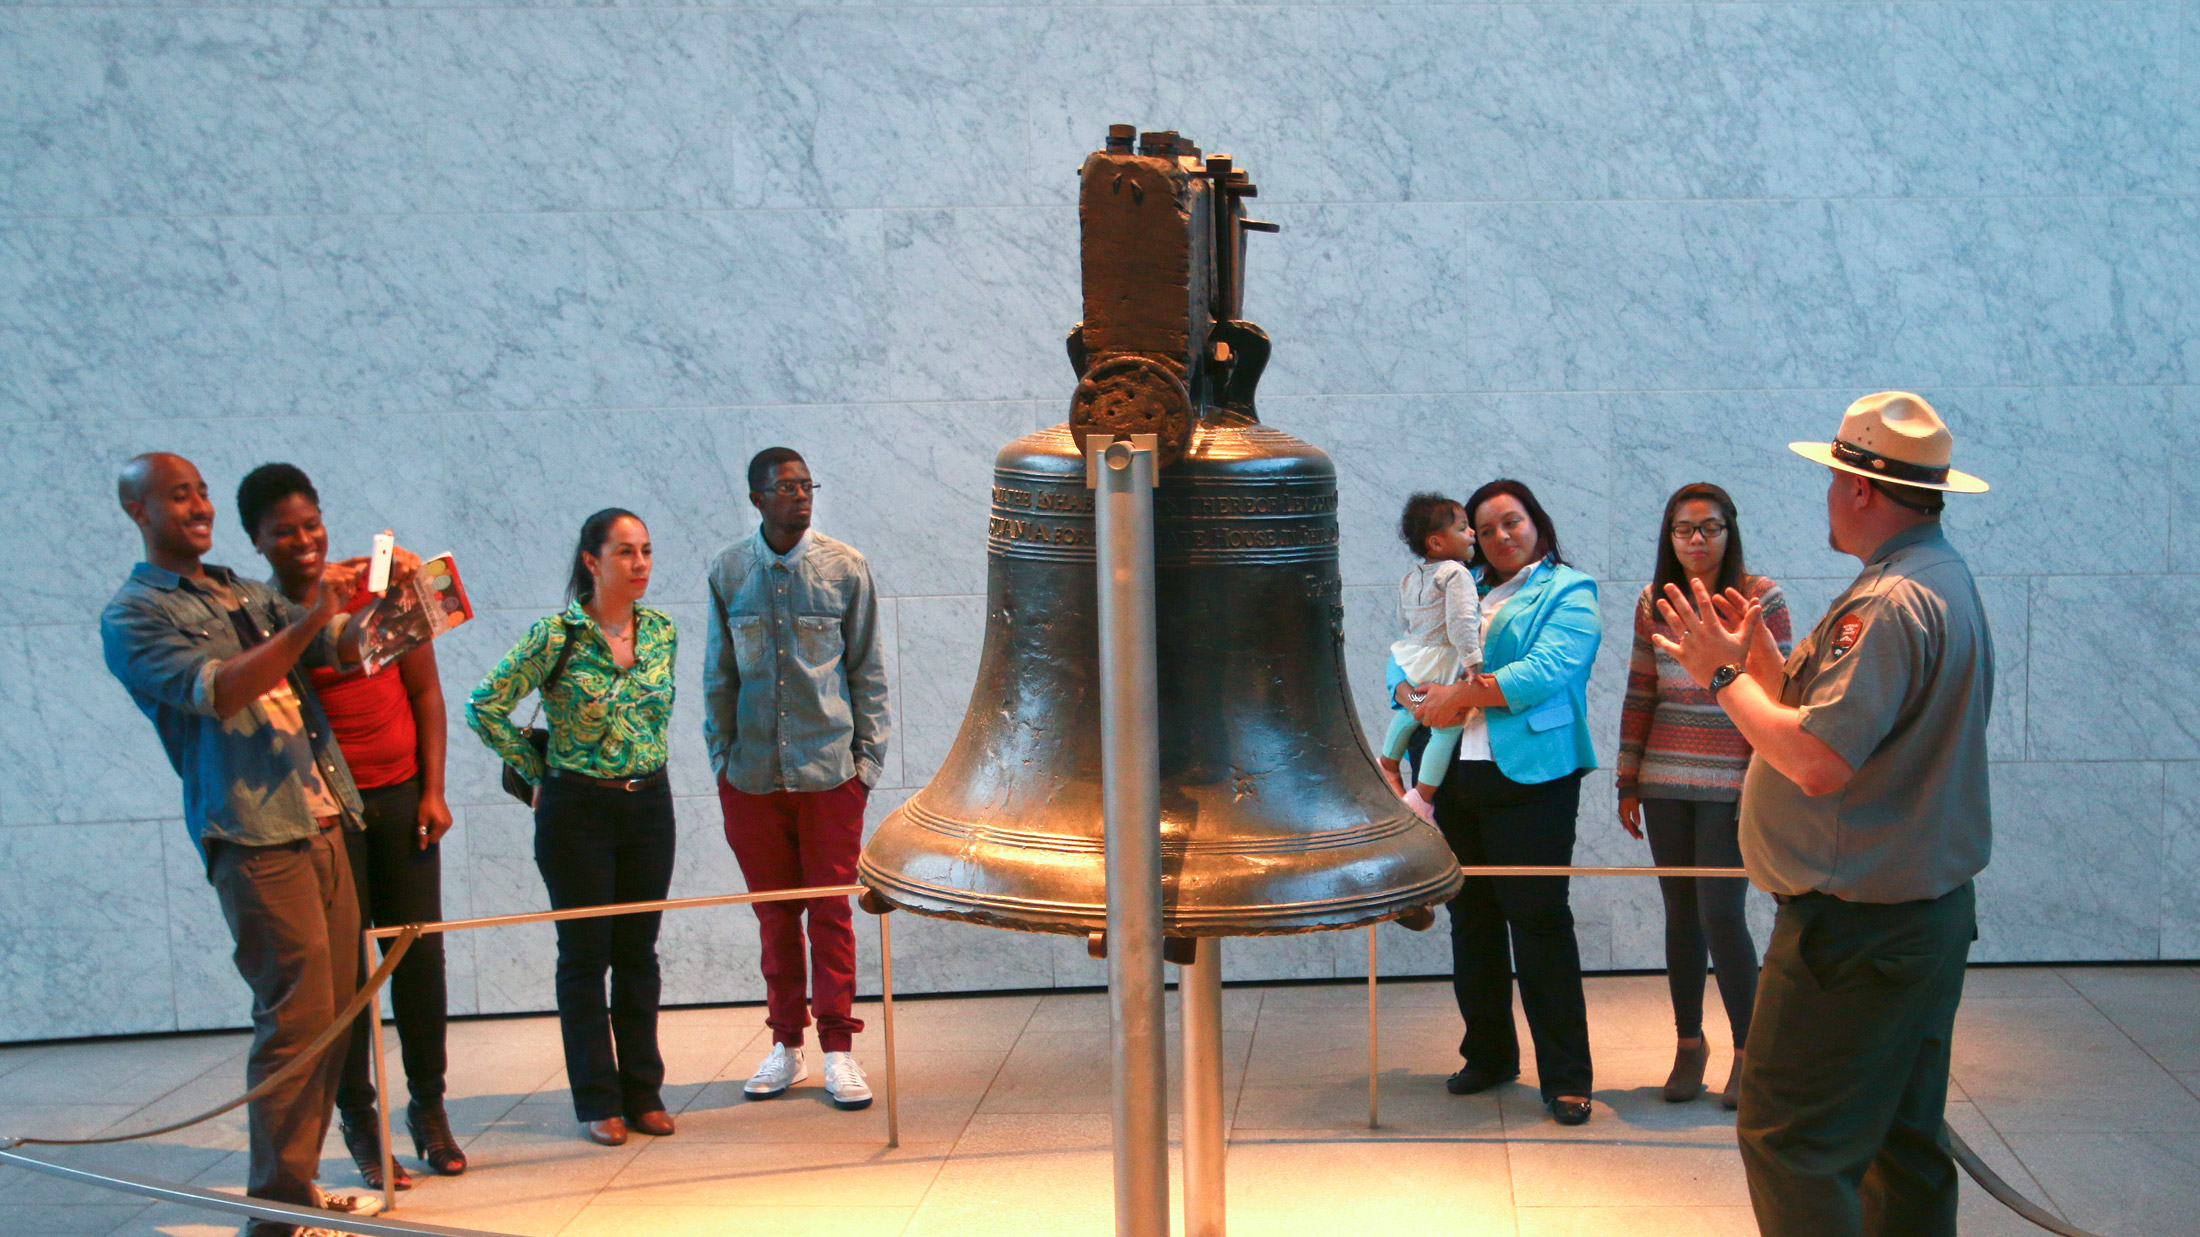 See-the-Iconic-Liberty-Bell